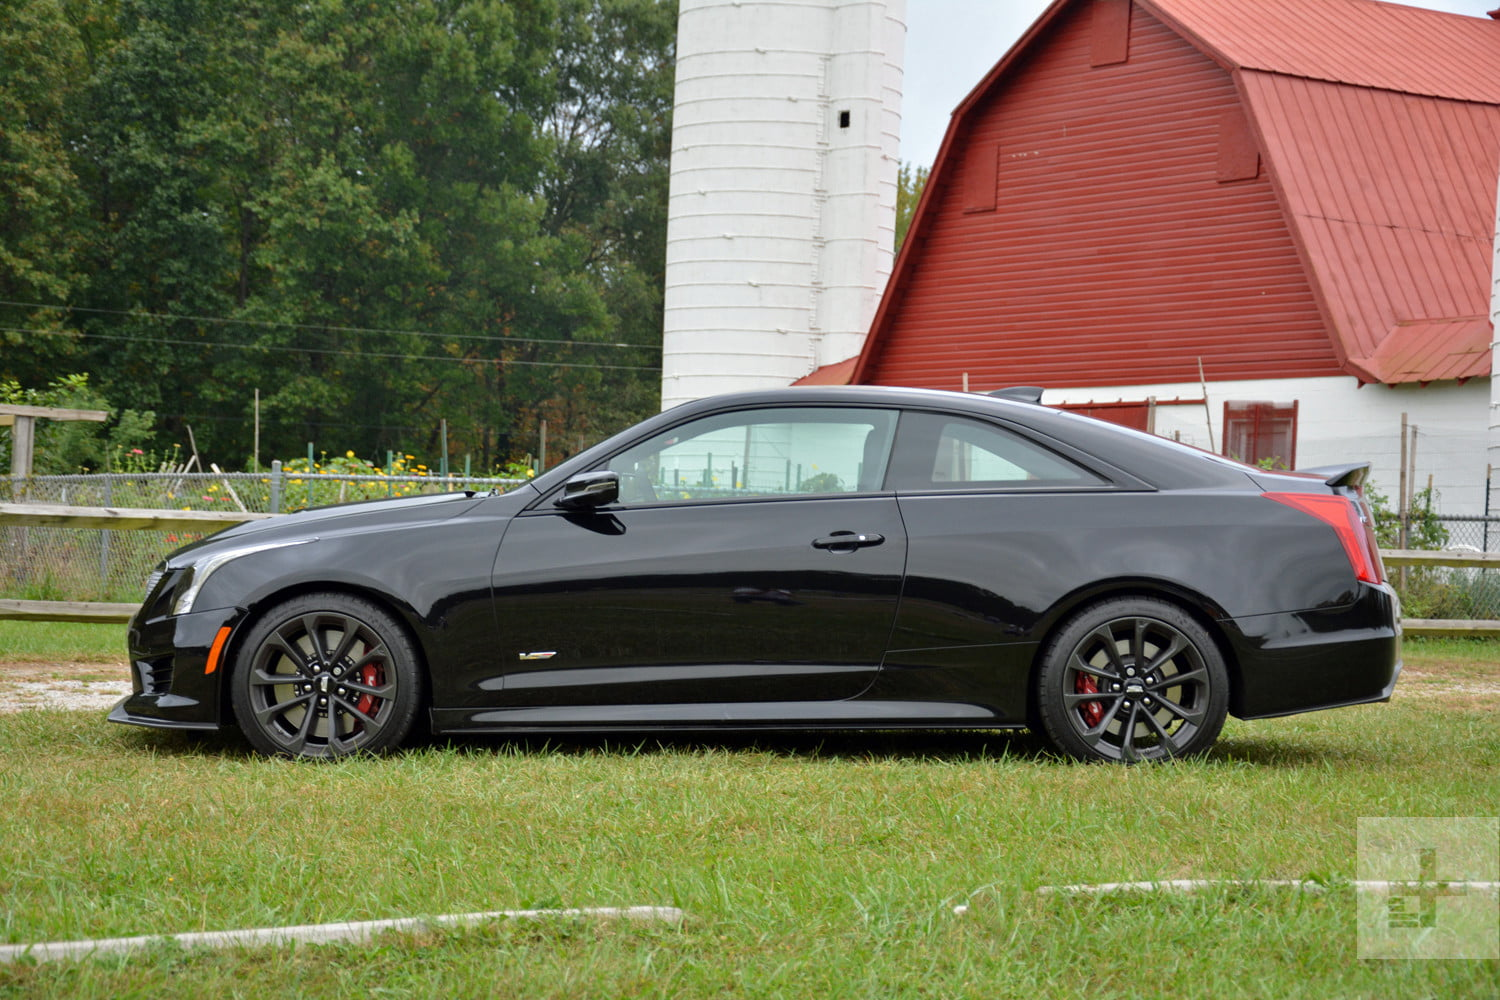 2017 Cadillac Ats V Coupe Review Performance Pictures And More Digital Trends